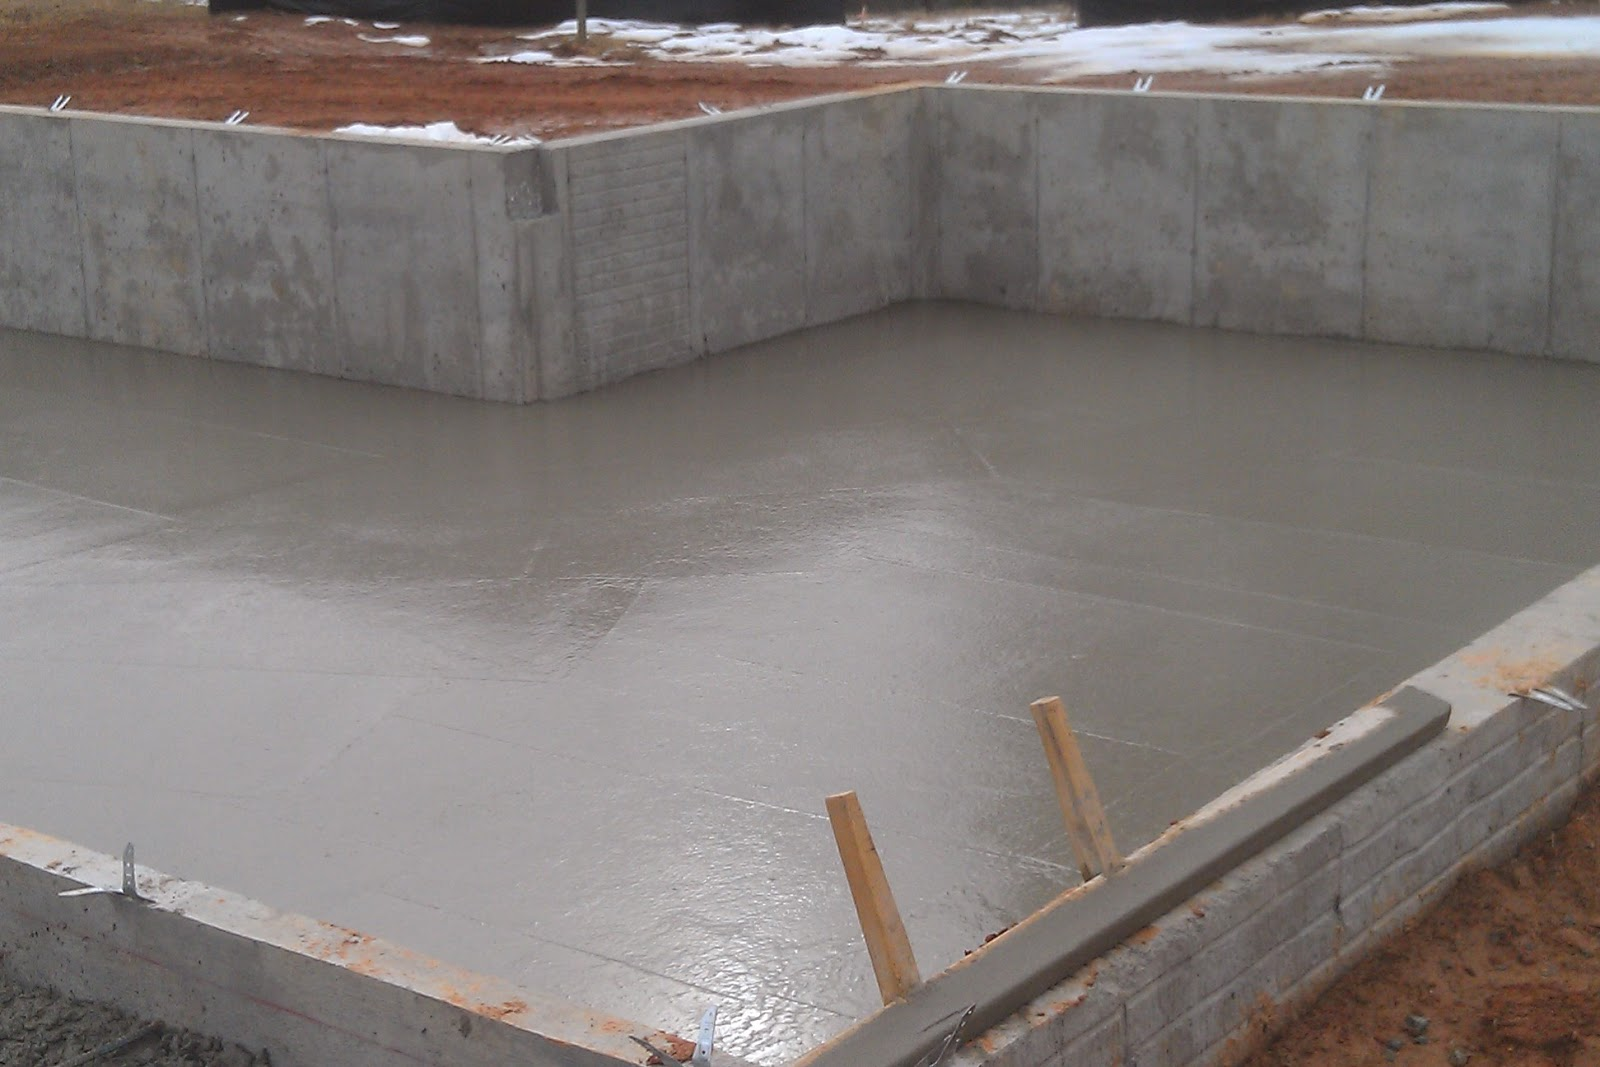 March 11 foundation pouring complete our new home at Concrete crawl space floor